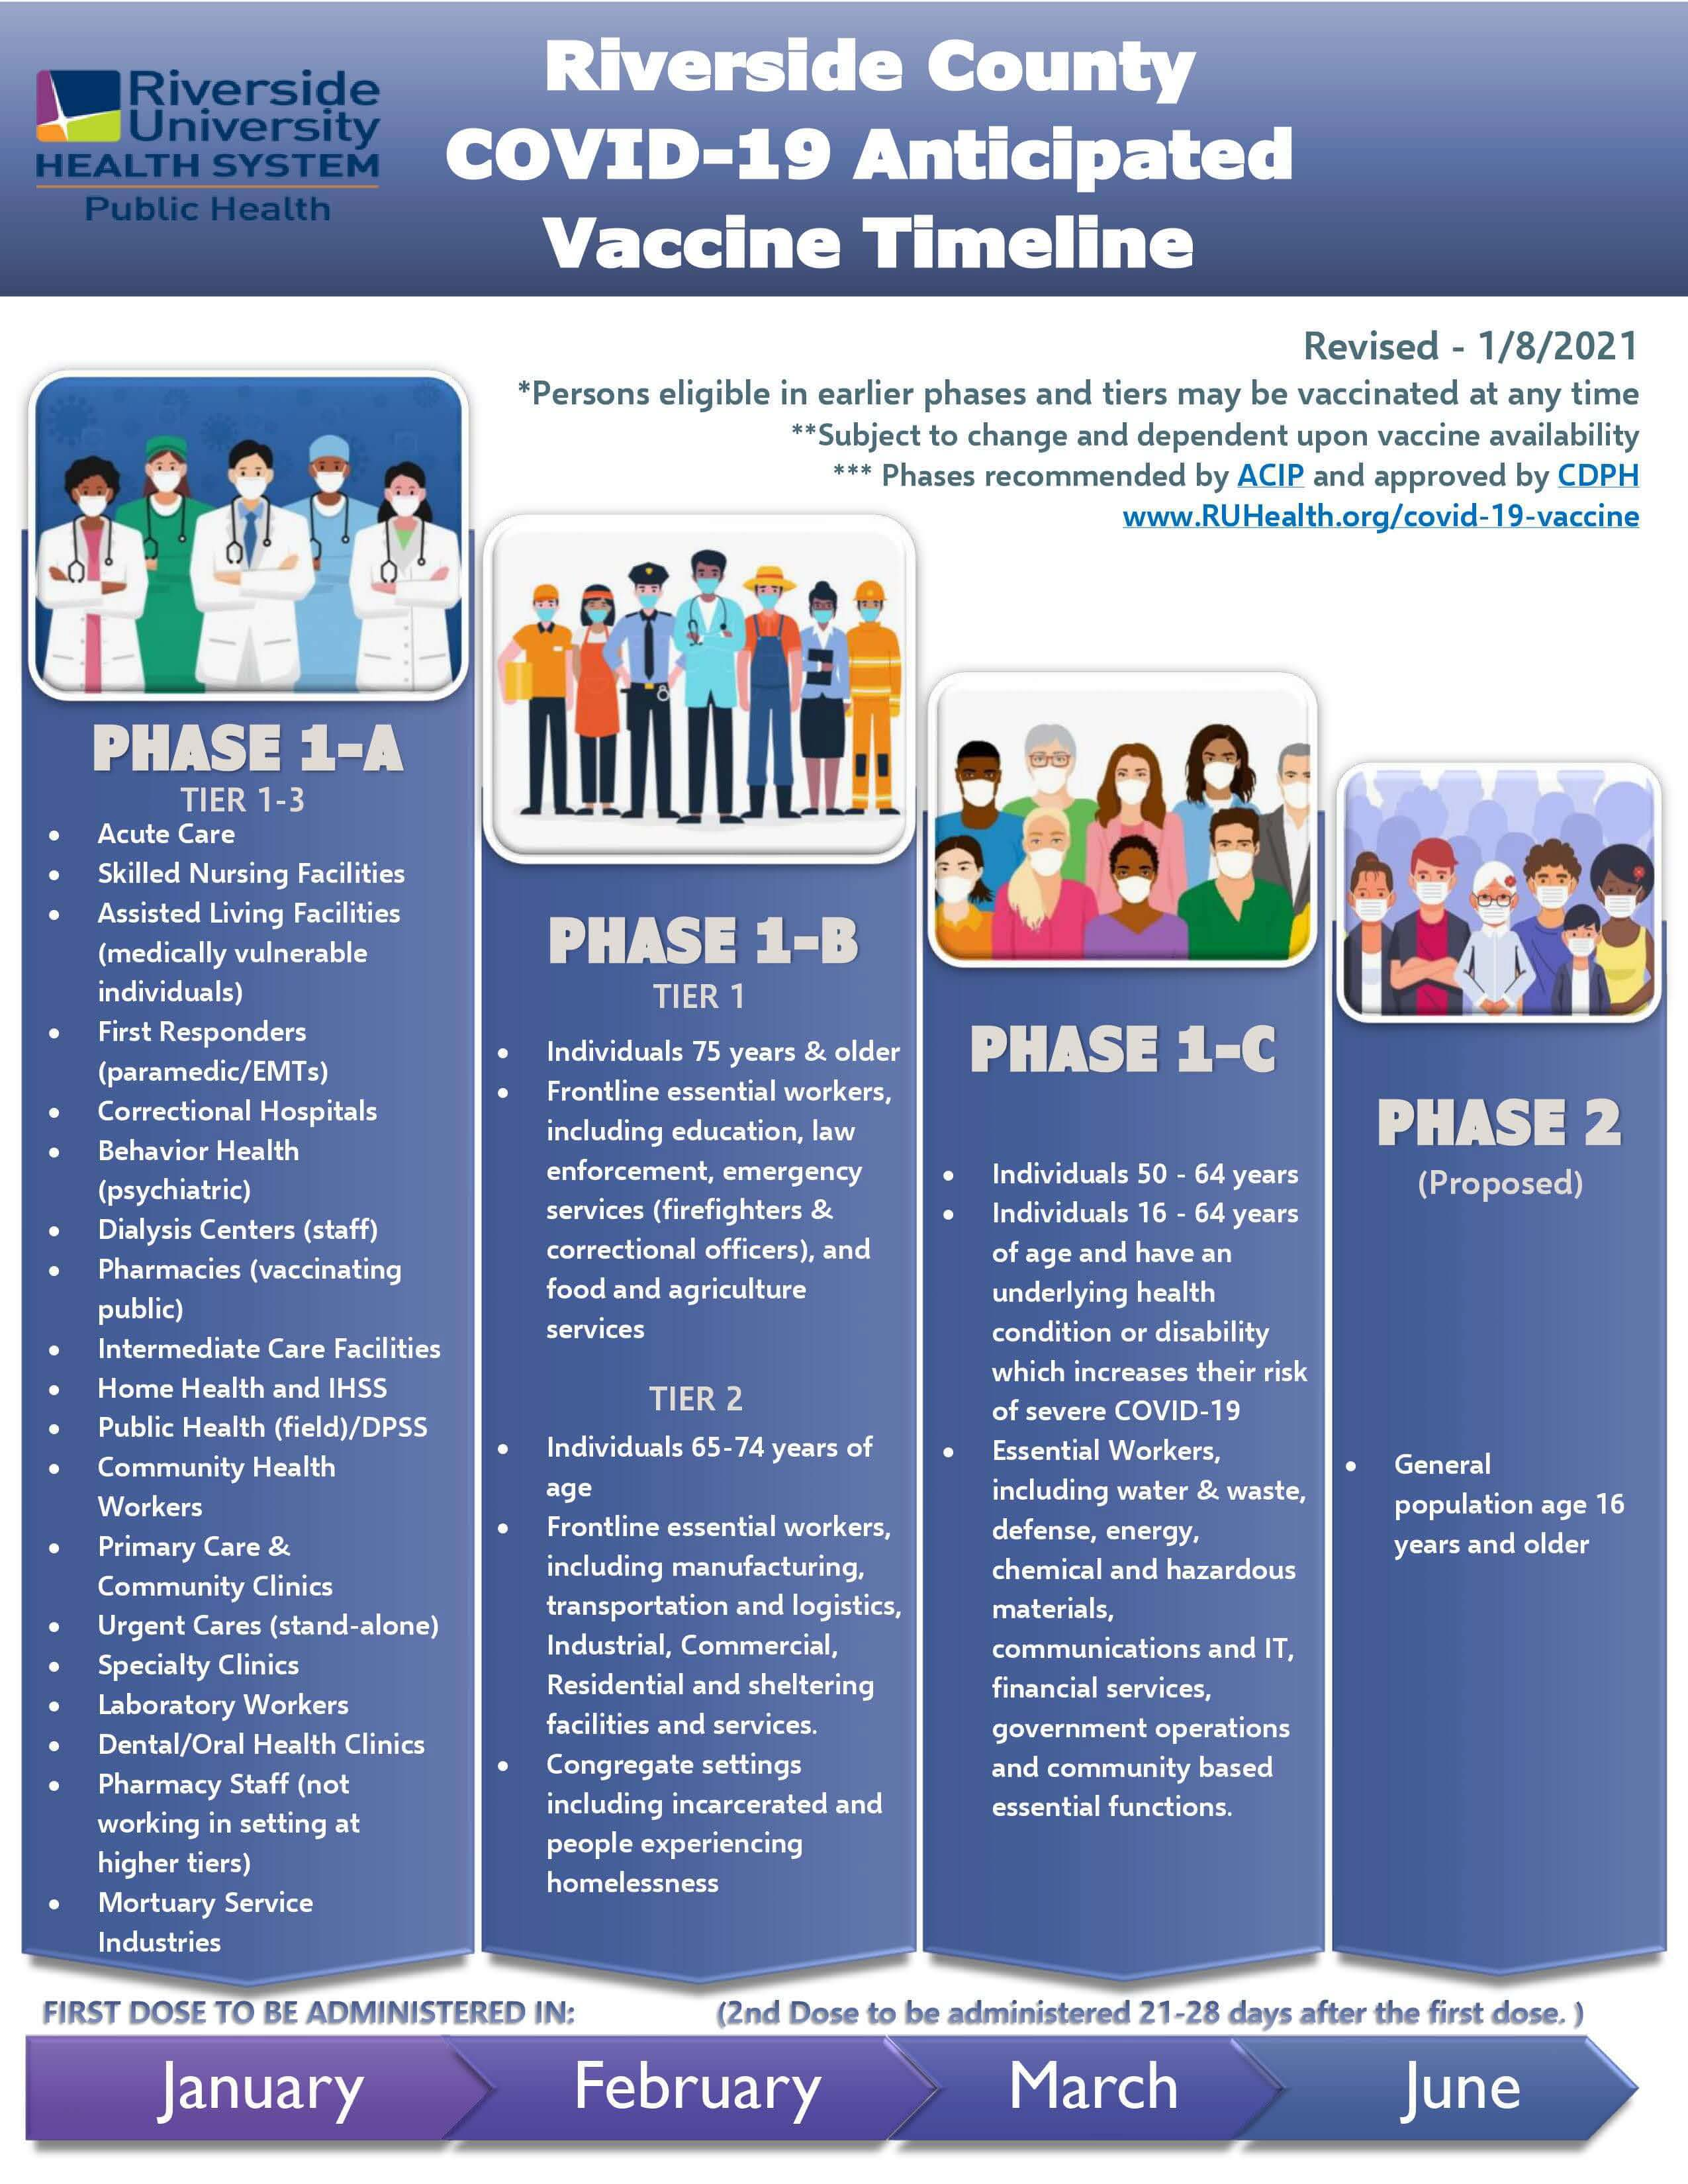 RCPH Vaccine Phases Timeframe 2021